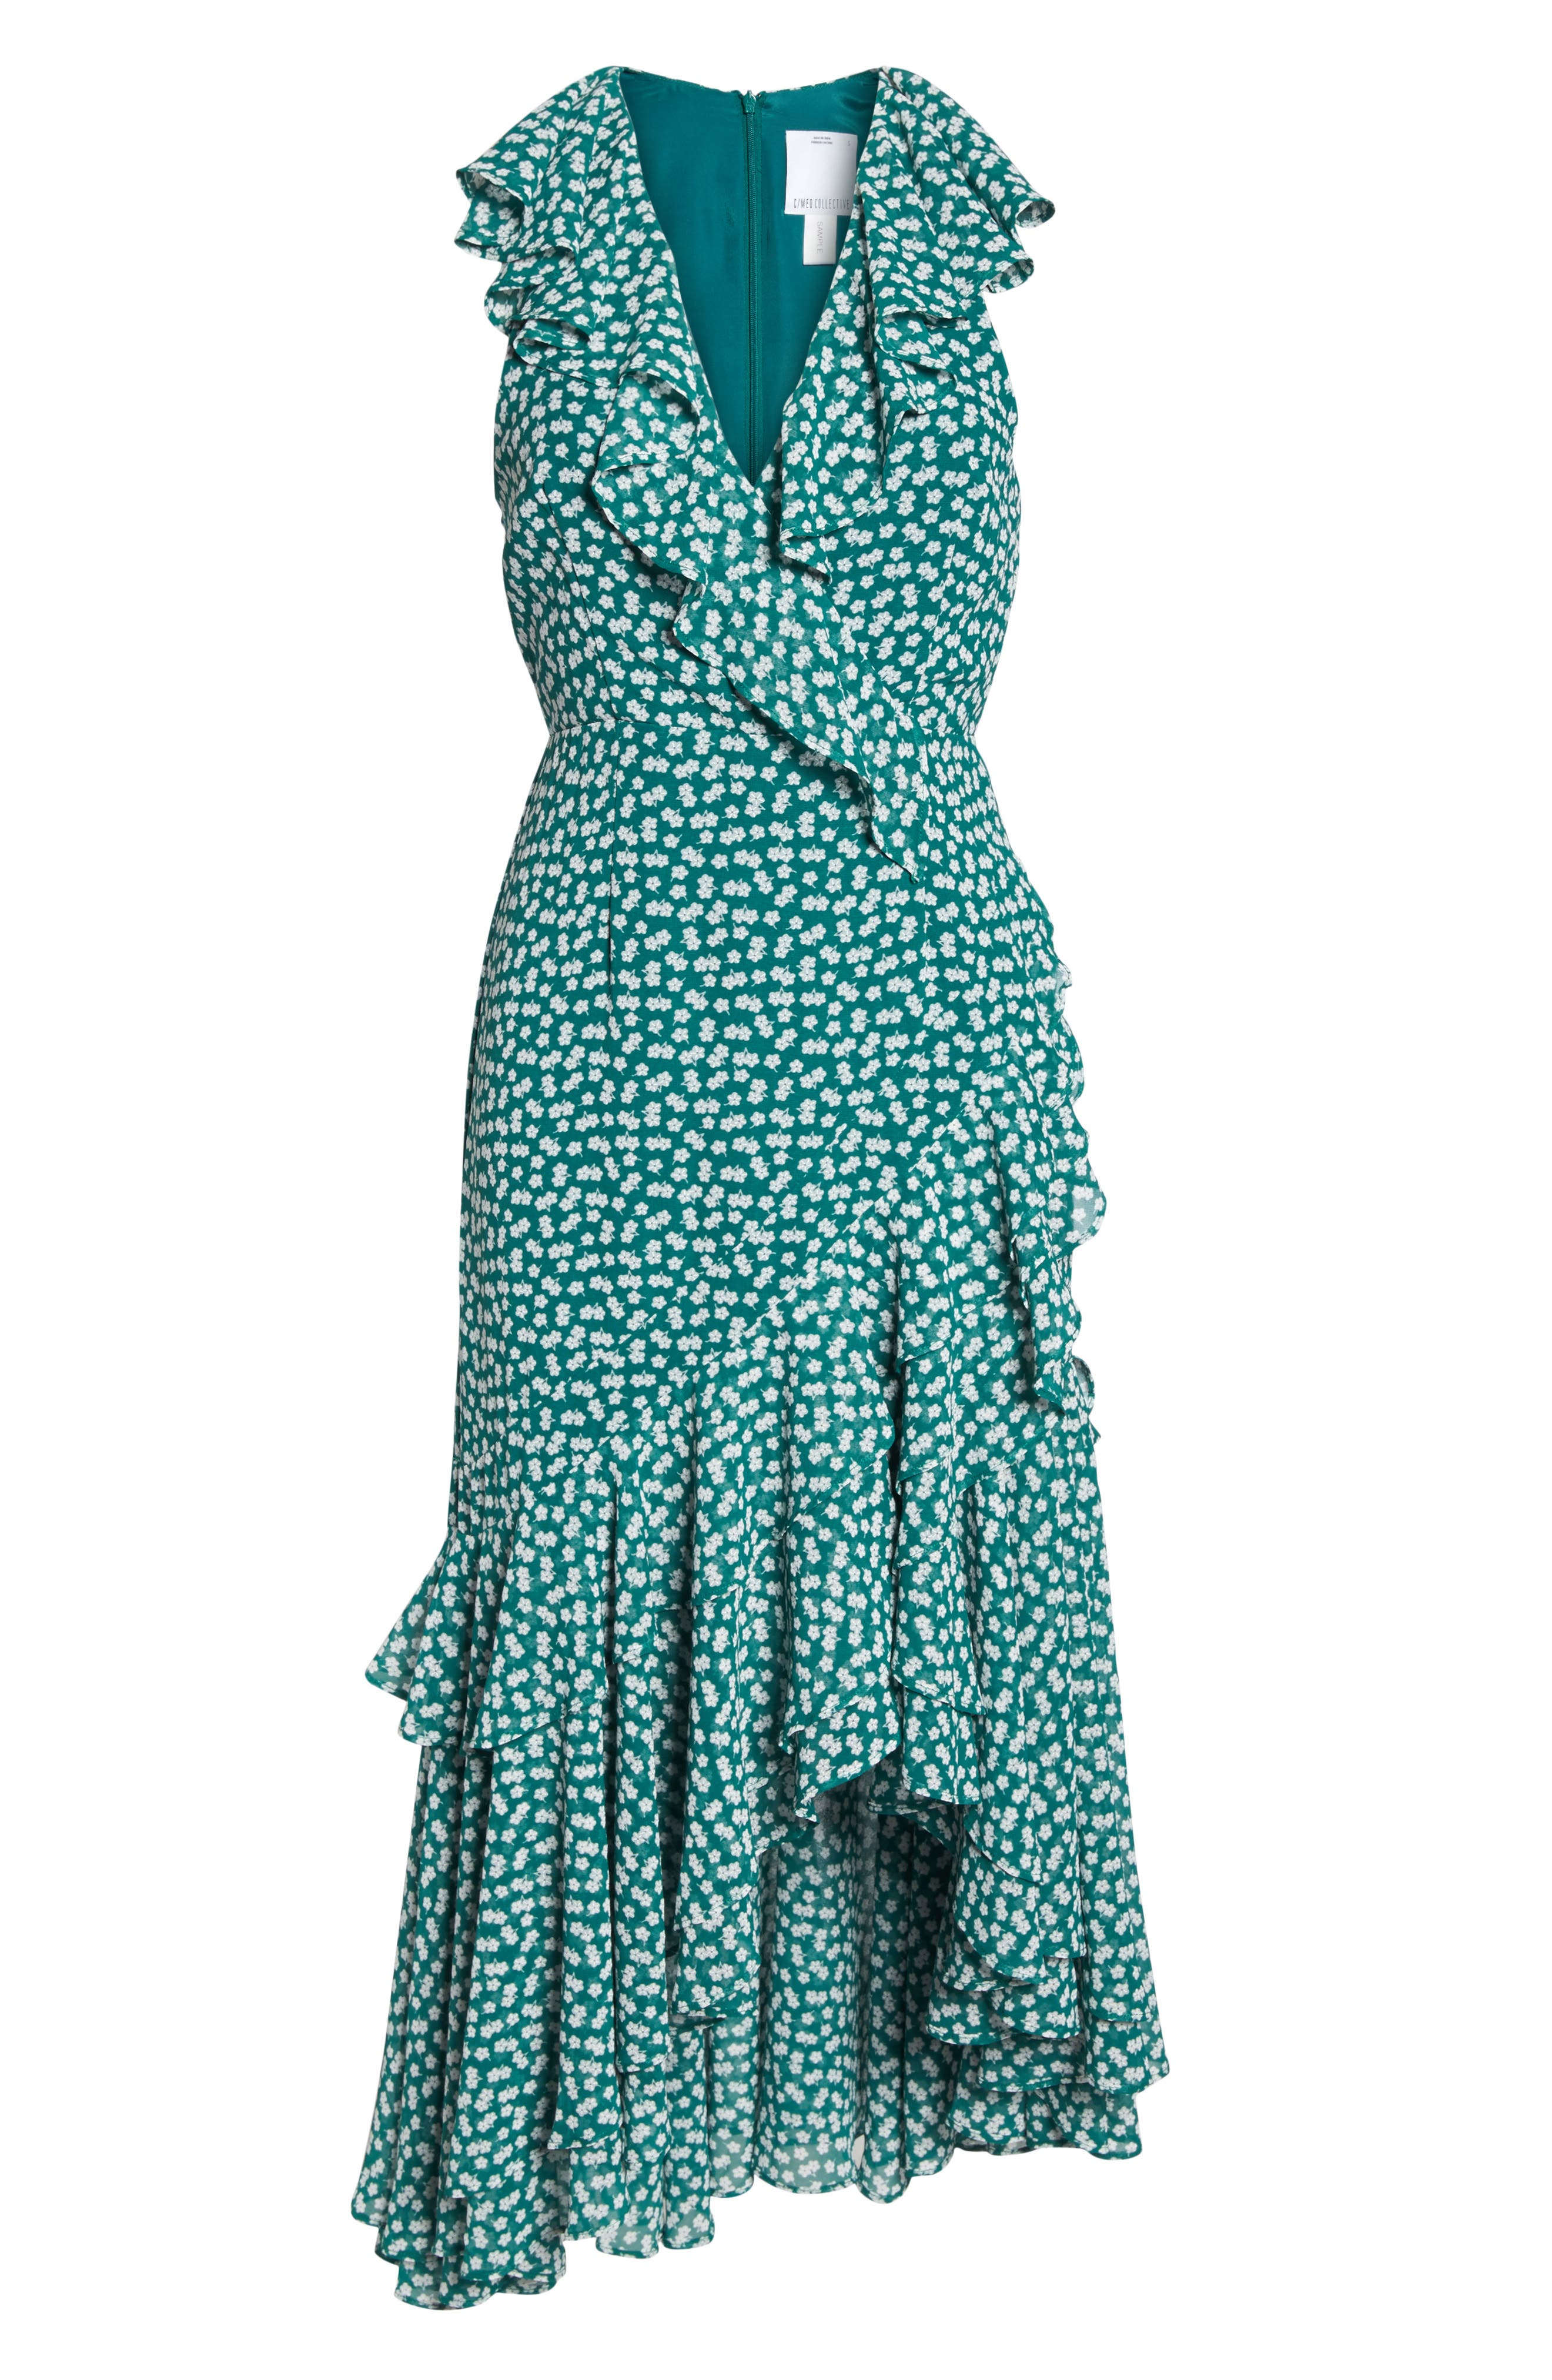 Be About You Ruffle Midi Dress,                             Alternate thumbnail 6, color,                             Green Daisy